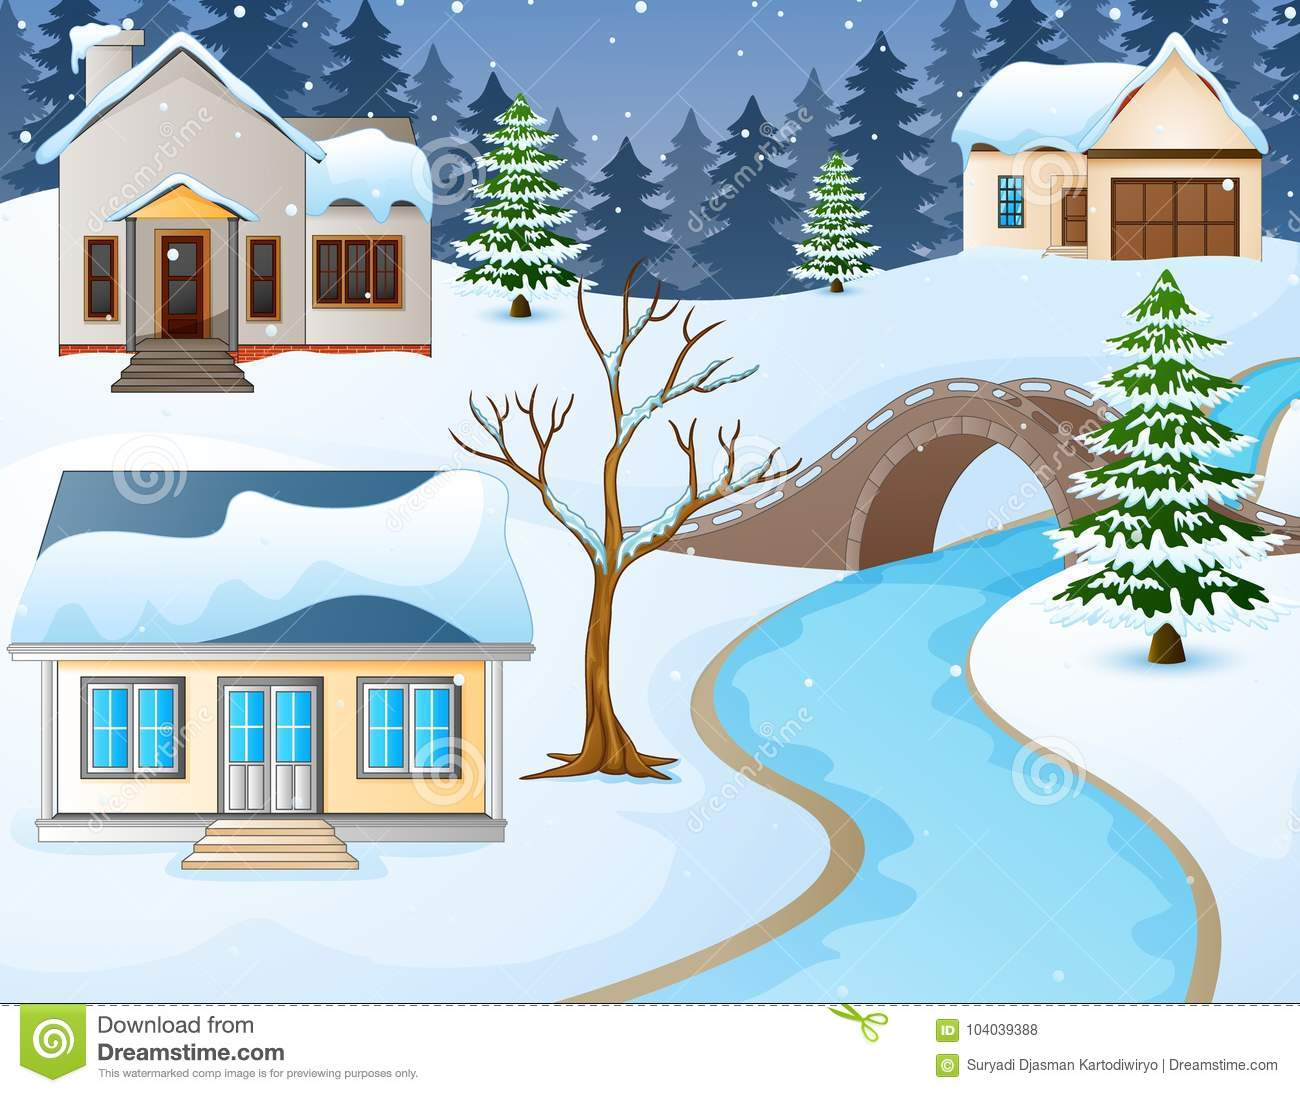 Download Cartoon Winter Rural Landscape With Houses And Stone Bridge Over River Stock Vector - Illustration of home, house: 104039388